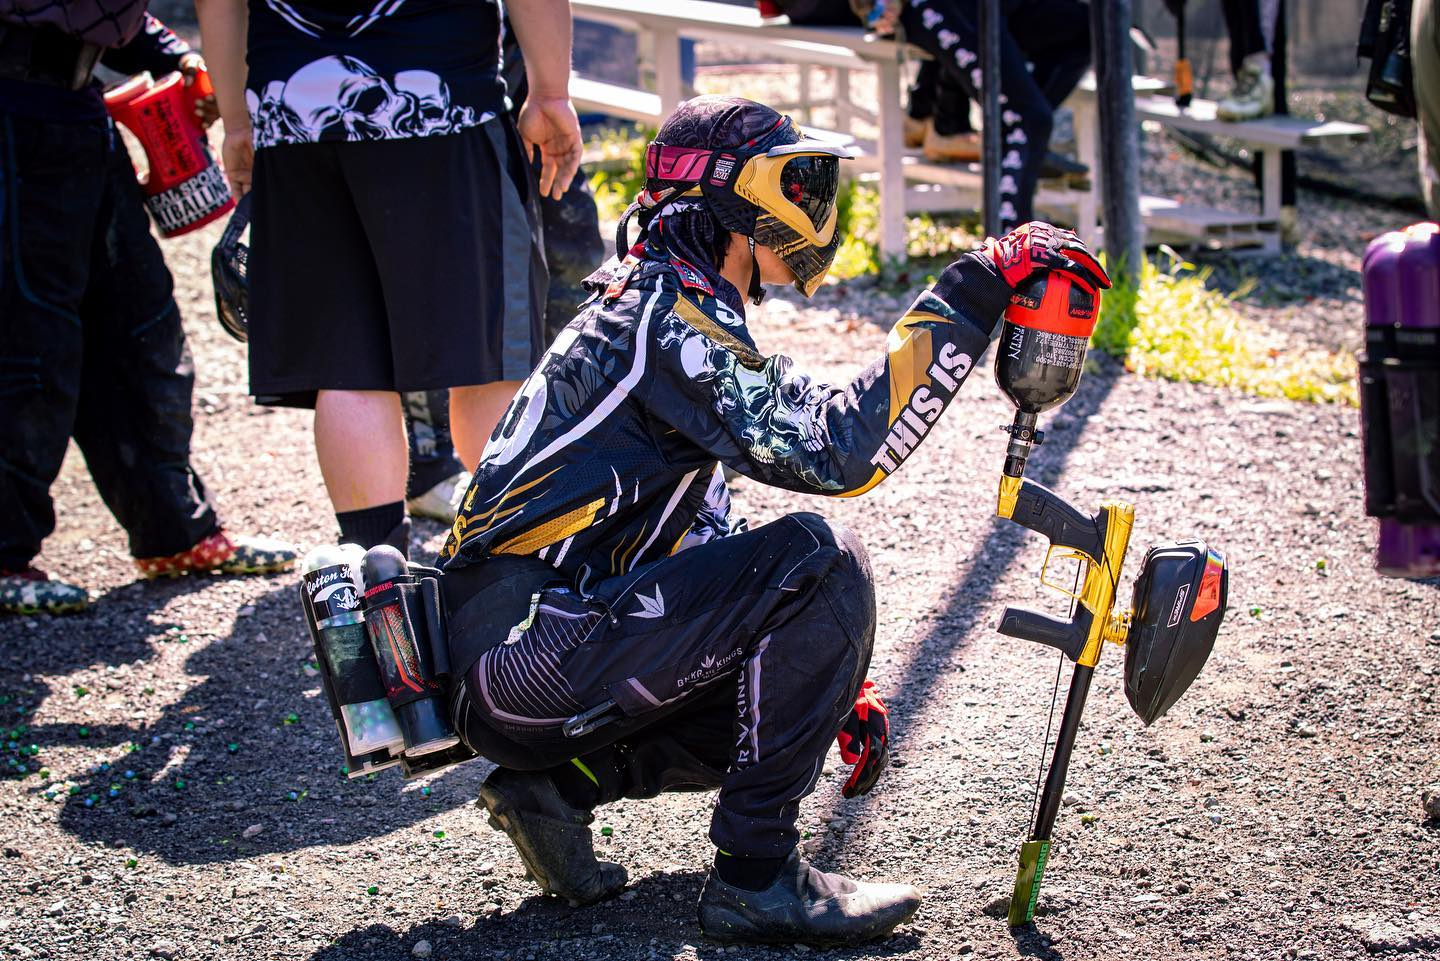 paintball player crouching